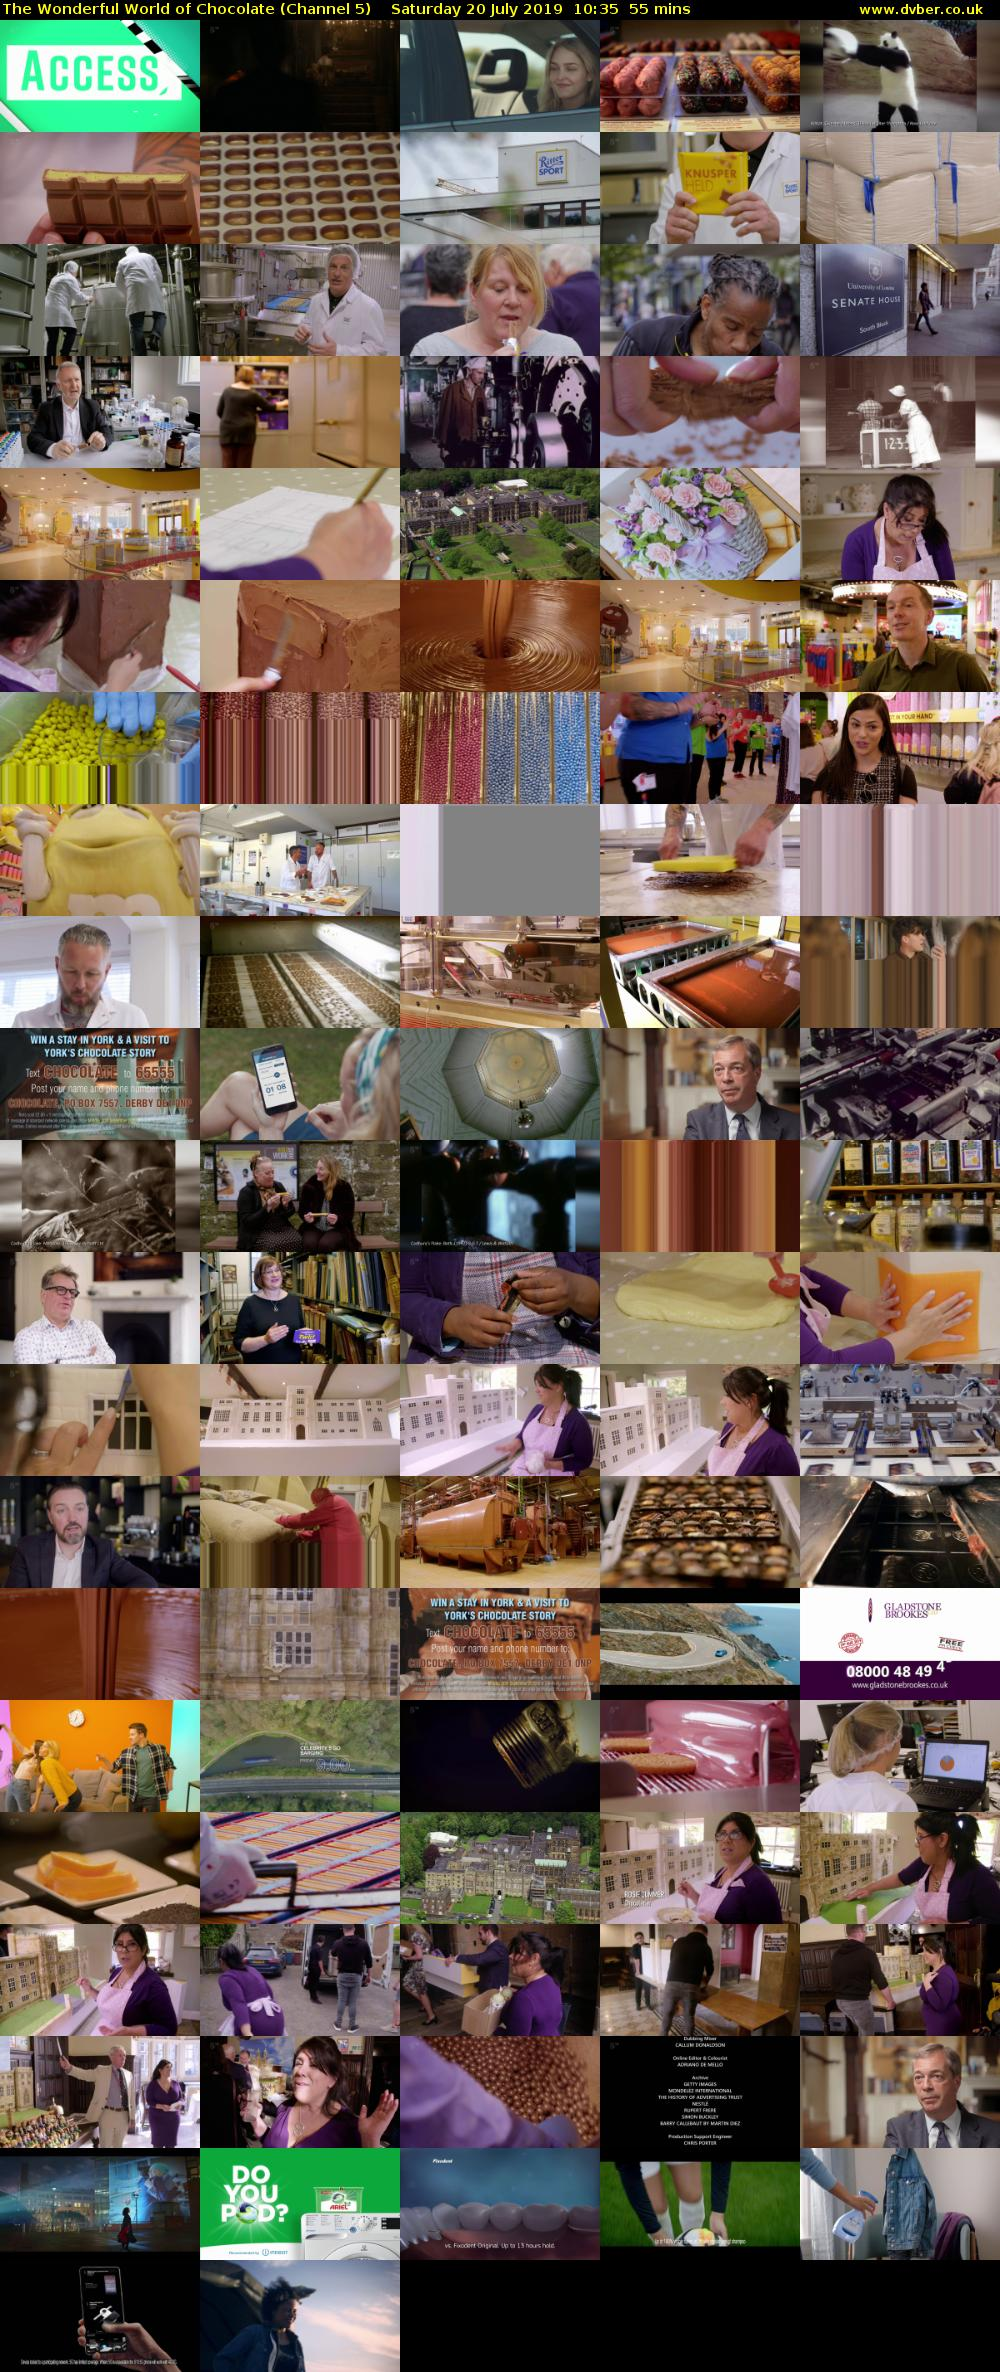 The Wonderful World of Chocolate (Channel 5) Saturday 20 July 2019 10:35 - 11:30